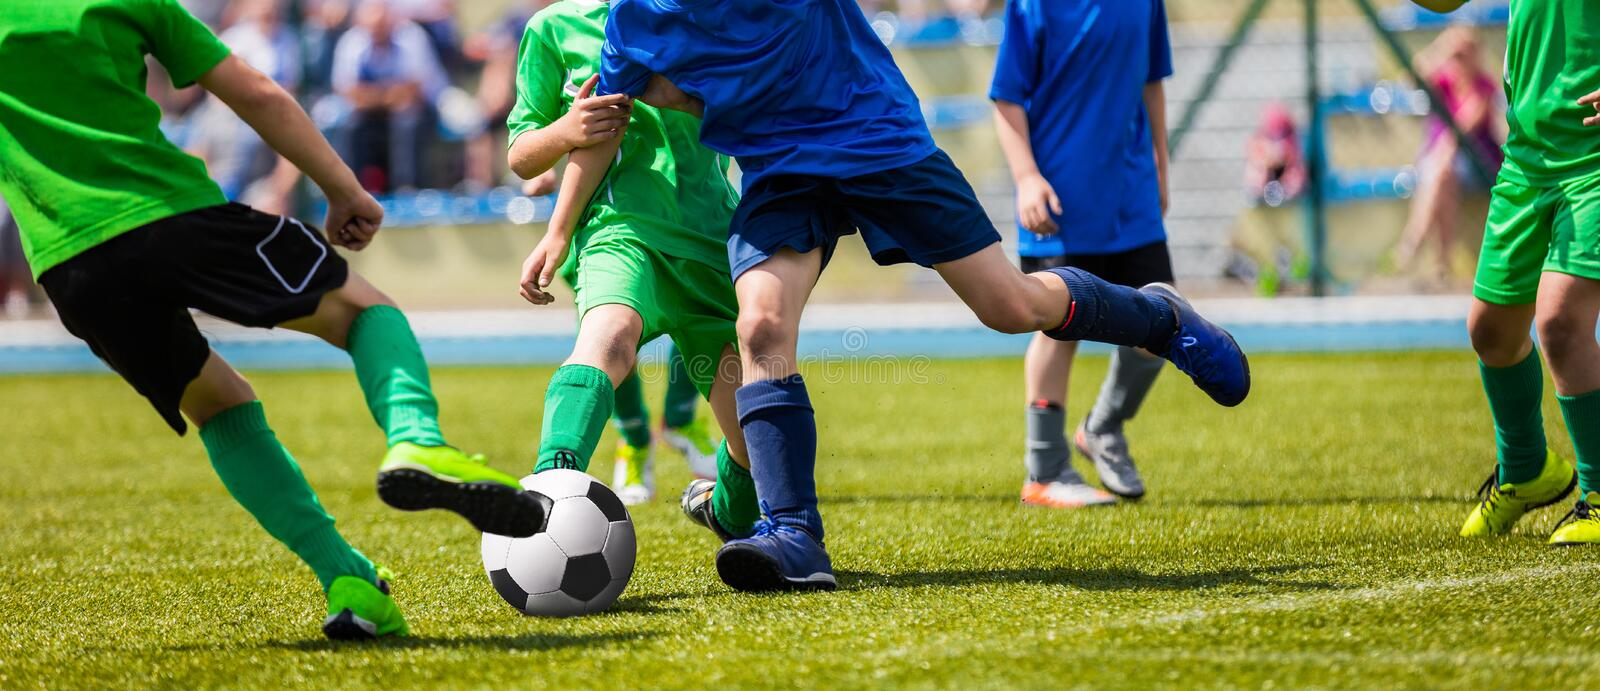 Running Young Soccer Football Players. Footballers Kicking Football Match Game. Youth Soccer Players Running After the Ball. Soccer Stadium in the Background royalty free stock photos